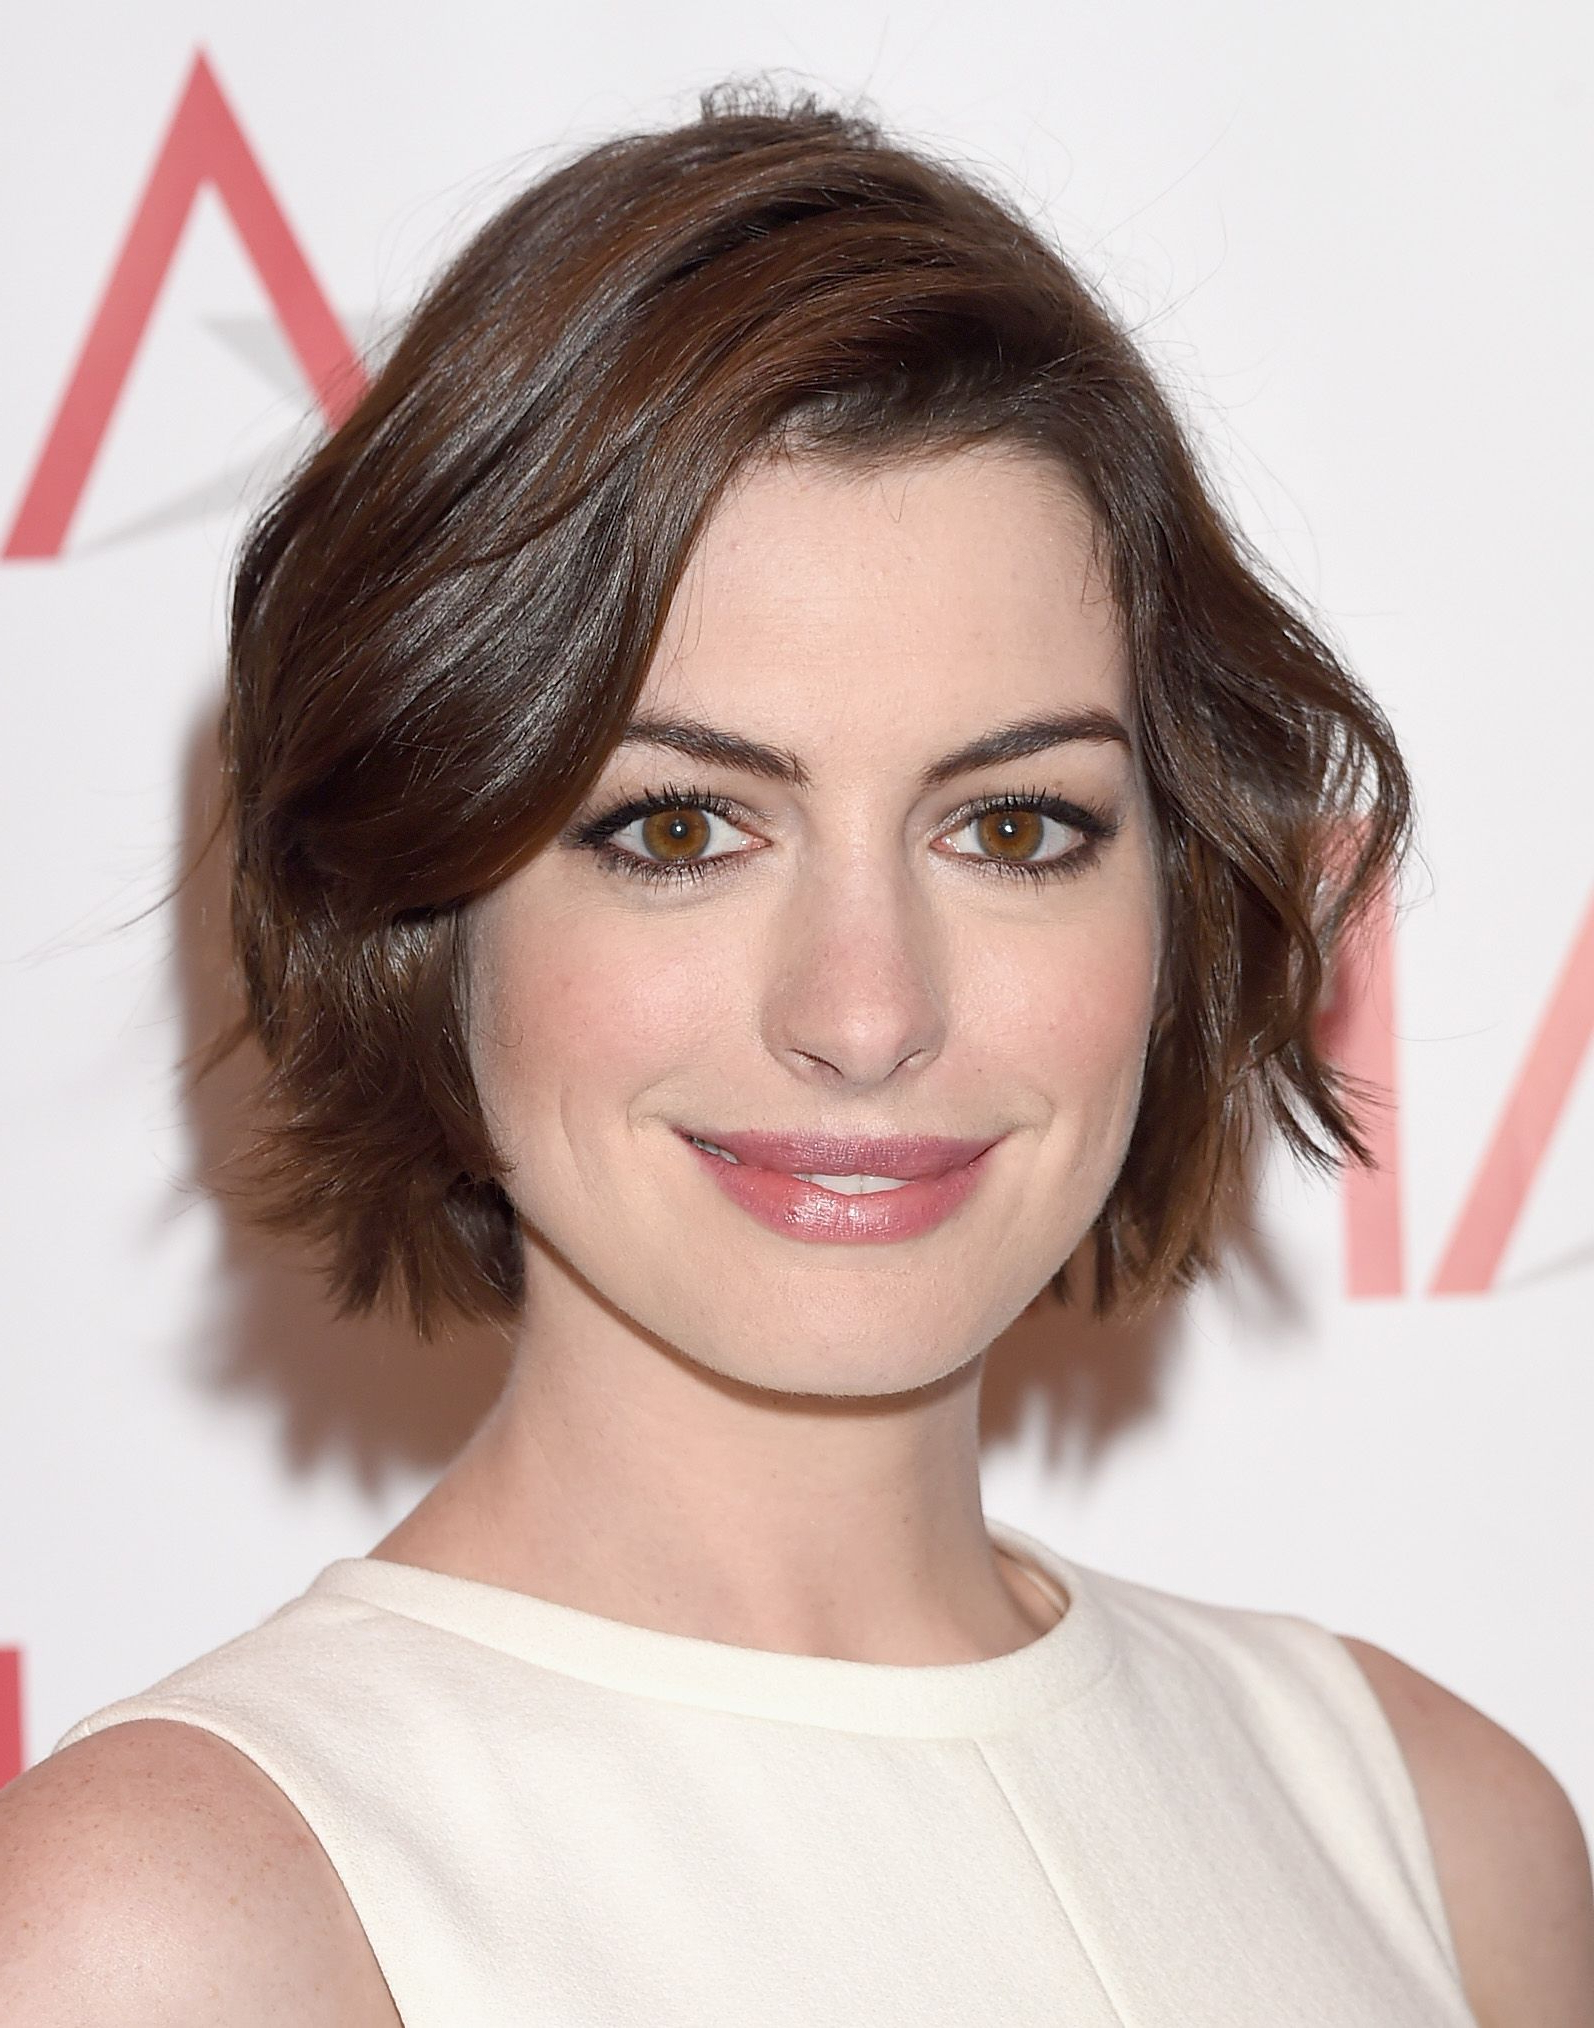 24 Best Haircuts For Women Over 30 – Short Hairstyle Ideas In Disheveled Burgundy Brown Bob Hairstyles (View 25 of 25)